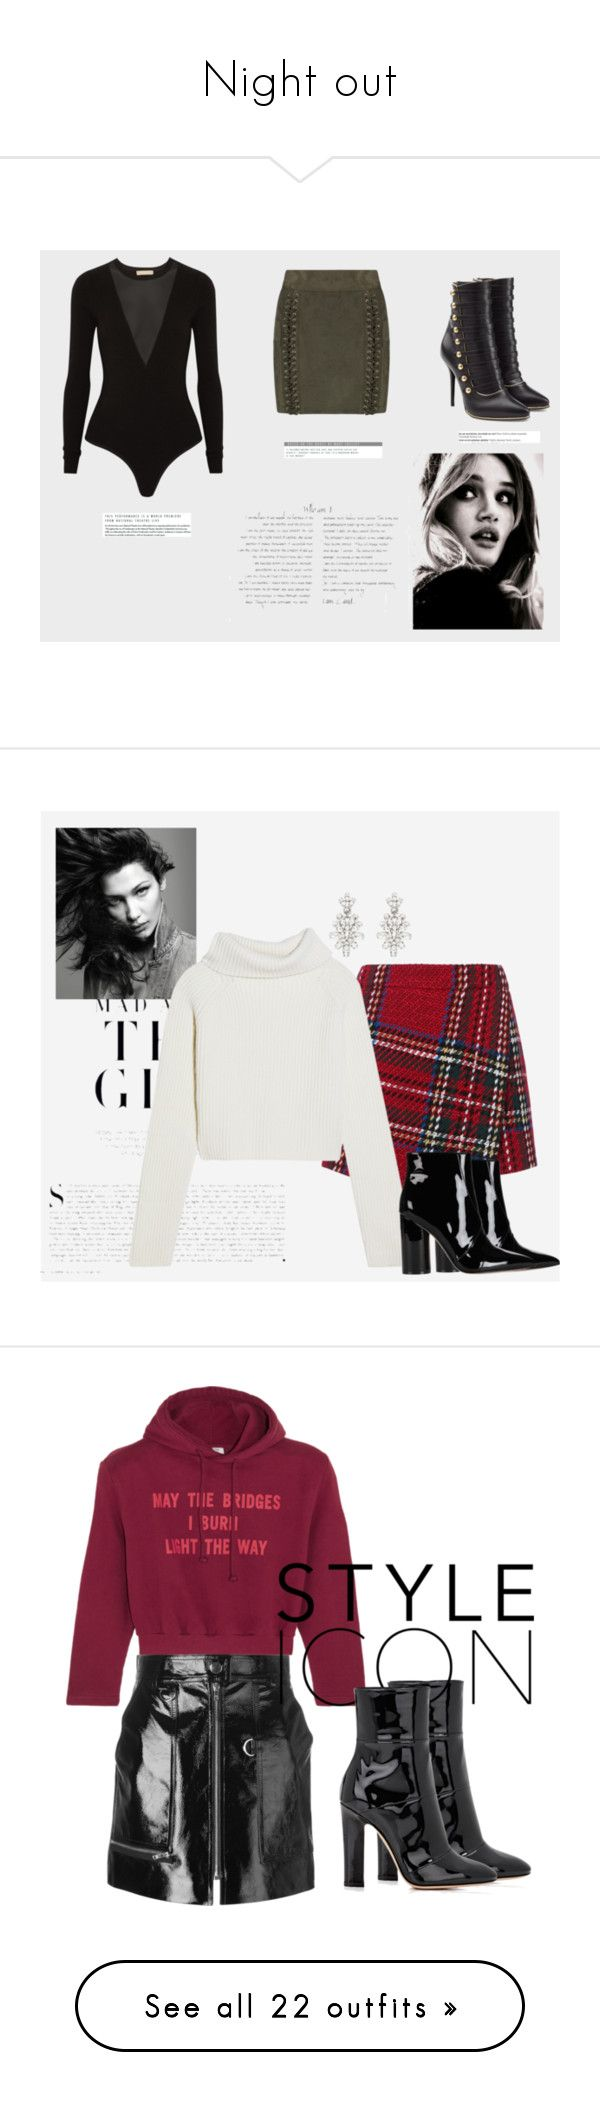 """""""Night out"""" by angelafloresv ❤ liked on Polyvore featuring Michael Kors, Boohoo, Balmain, Libertine, Barbara Bui, Kershaw, By Terry, Sigerson Morrison, Haider Ackermann and Oscar de la Renta"""